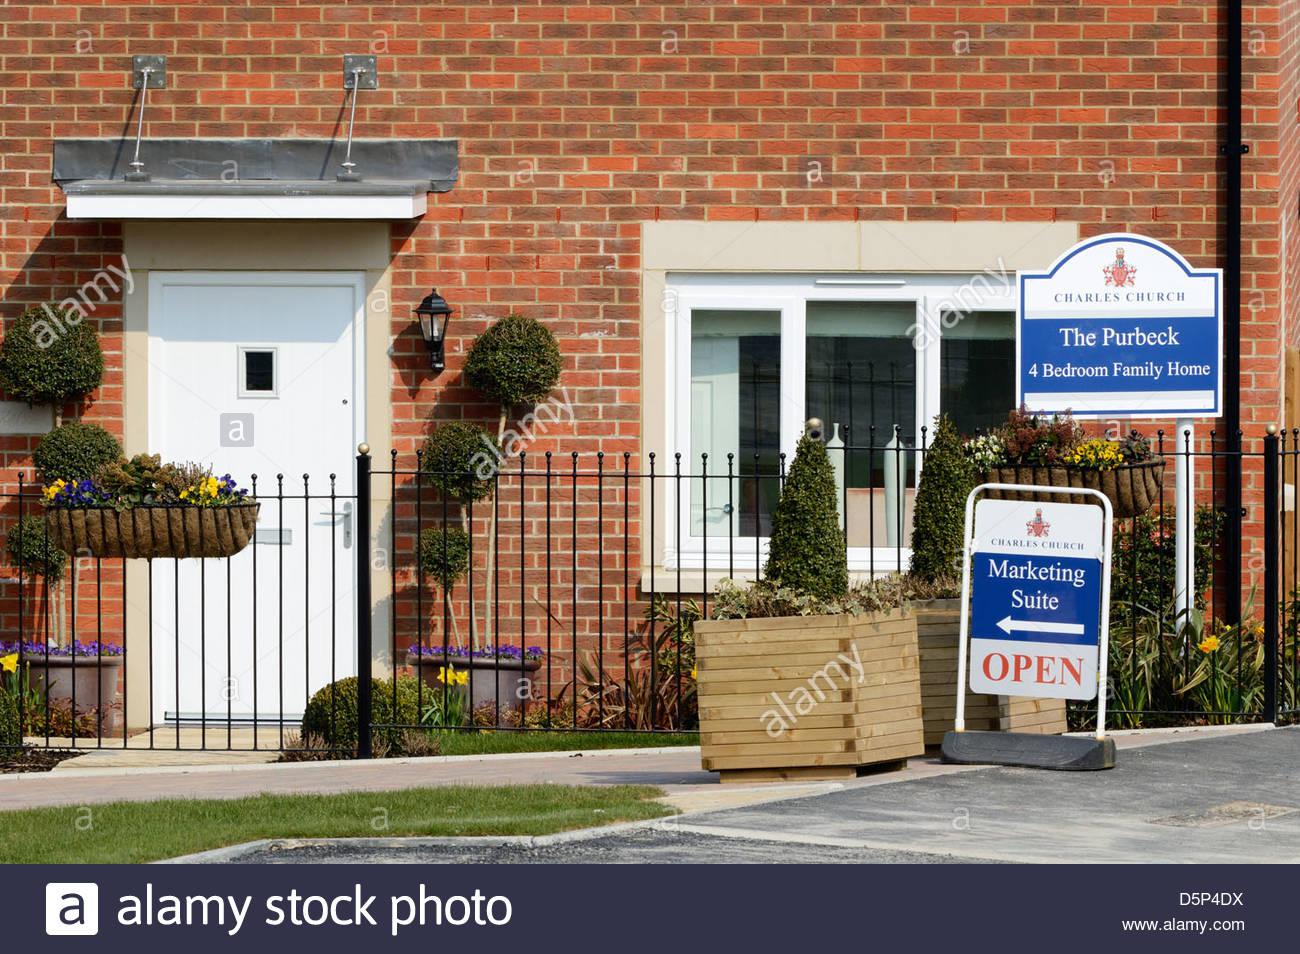 Charles Church Show Home with marketing signs, Blandford Forum, Dorset, England - Stock Image